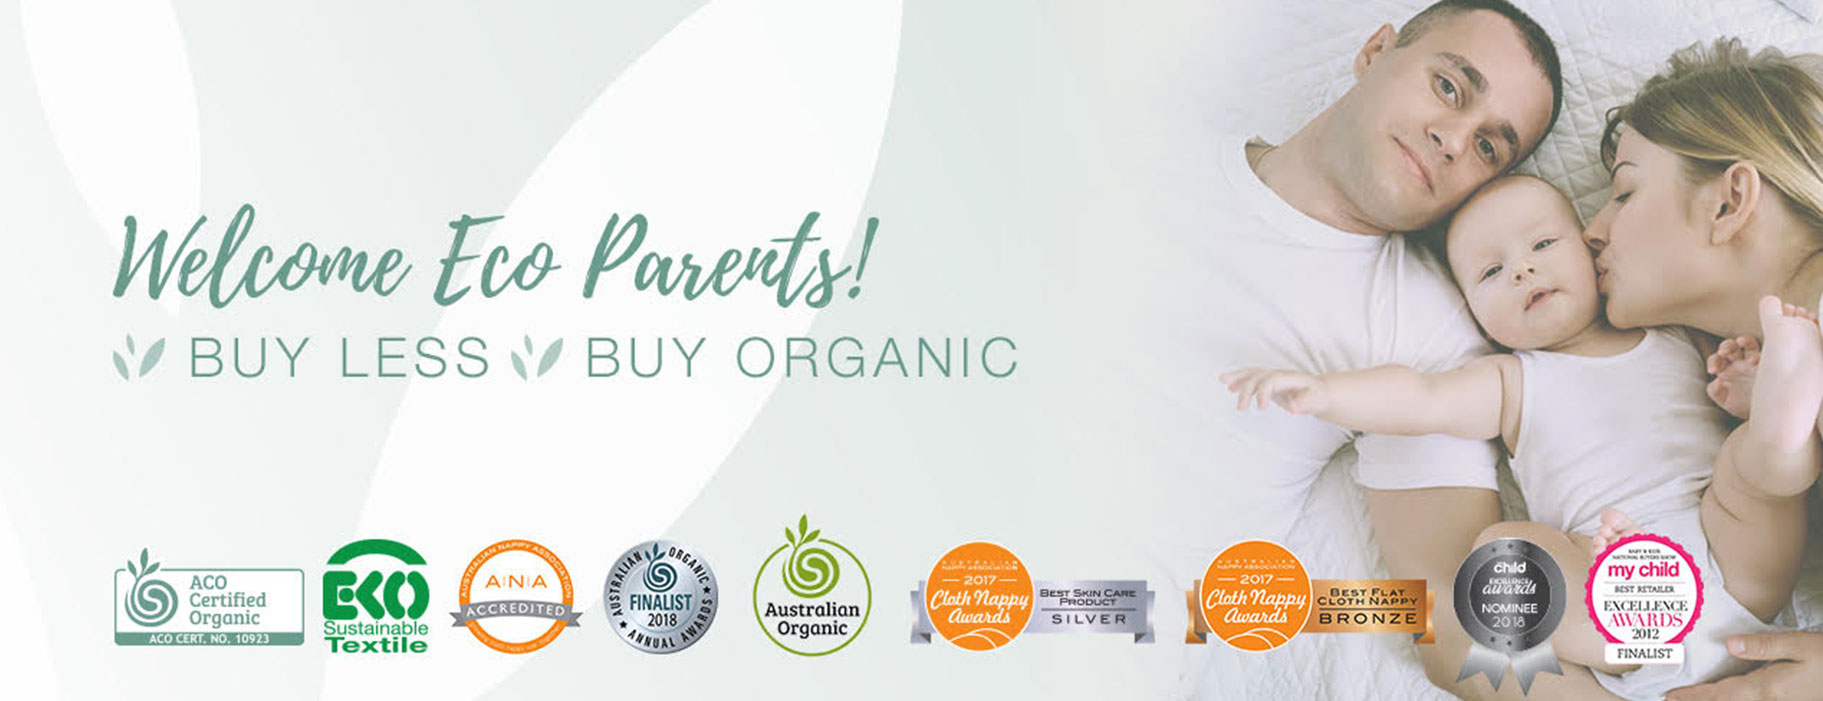 ffdb17a8530db Natural & Organic Baby Products - Healthier, Safer Online Baby Store -  Australia